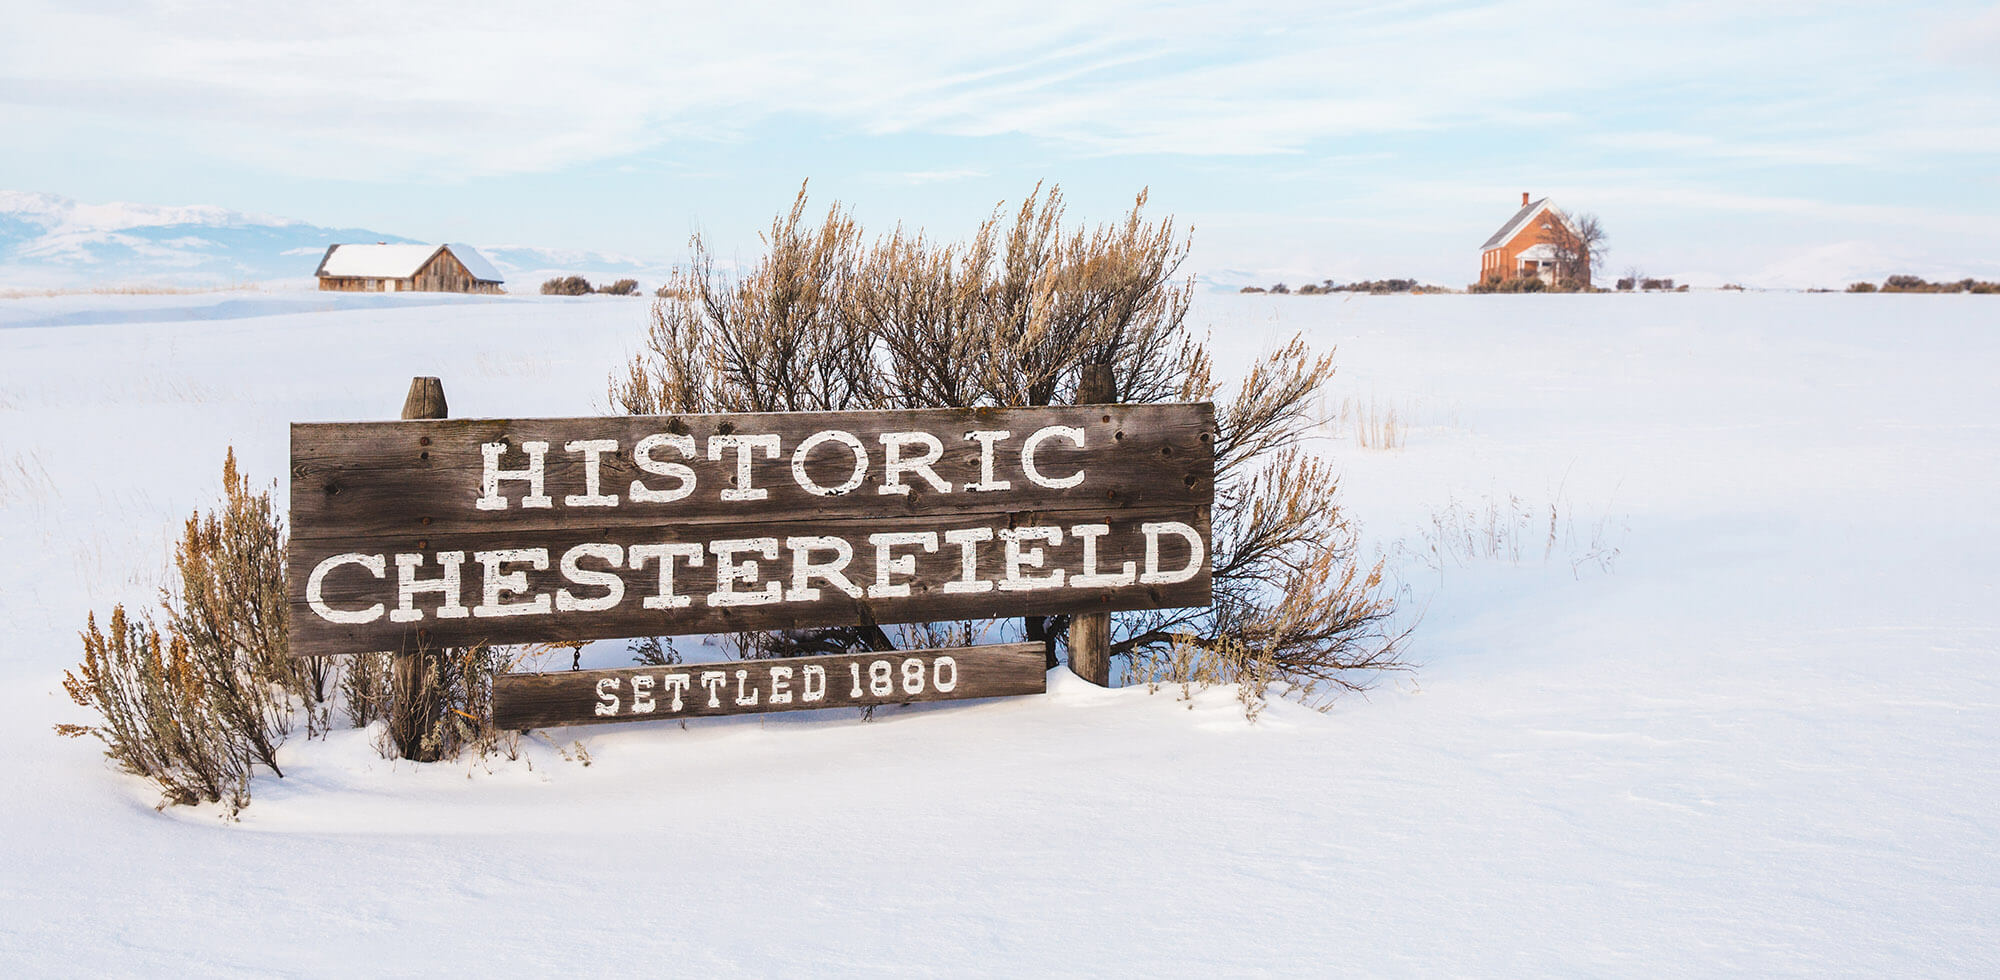 Chesterfield Historic Town Site